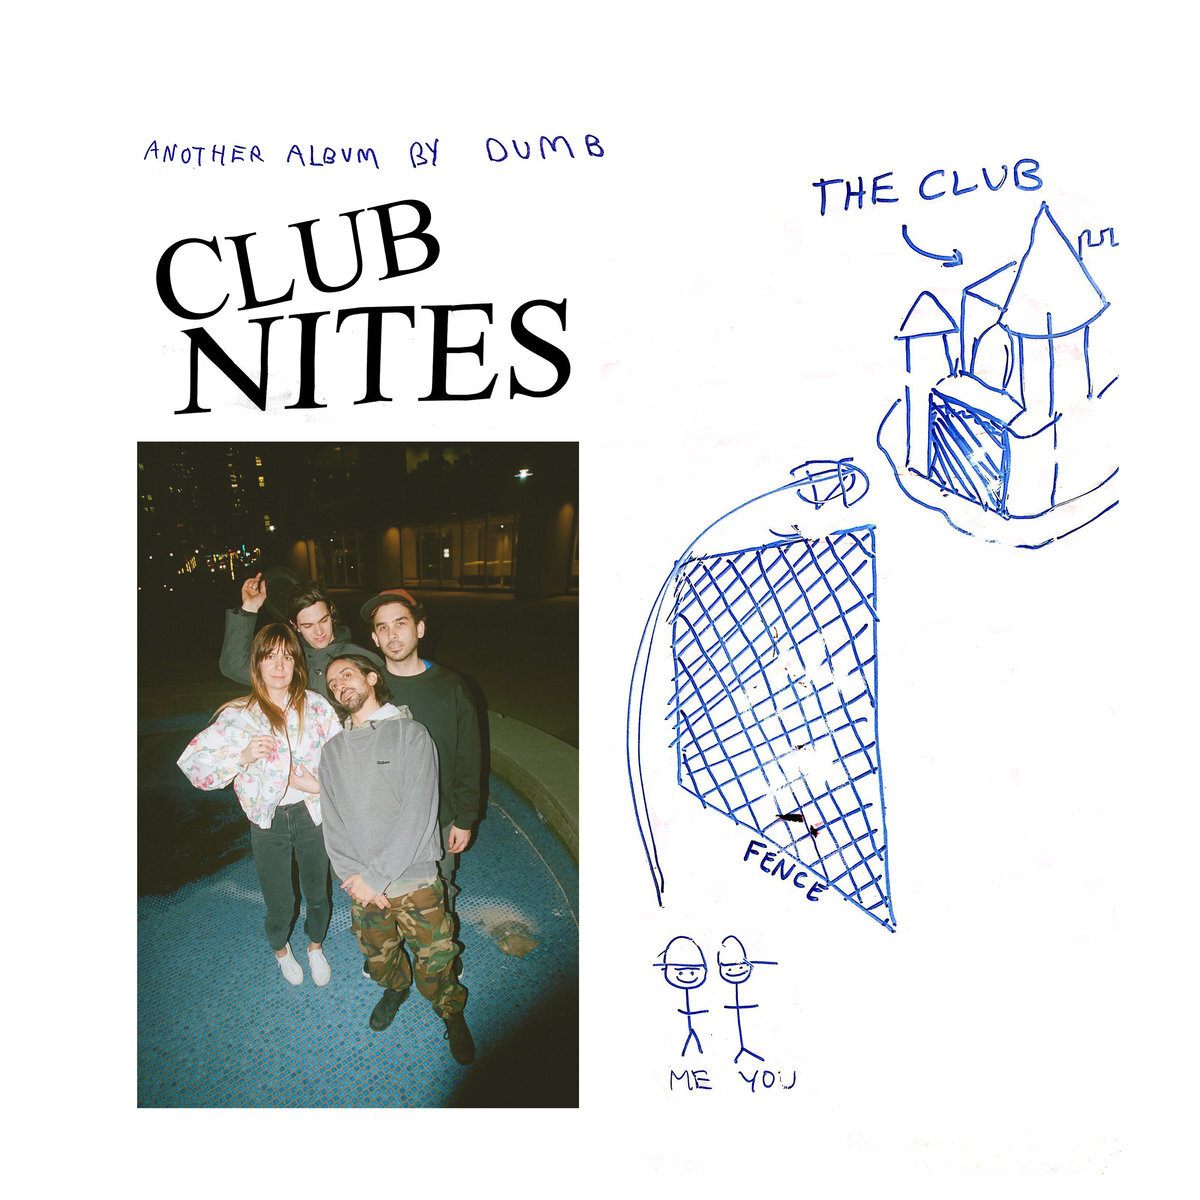 dumb / Club Nites(LP)